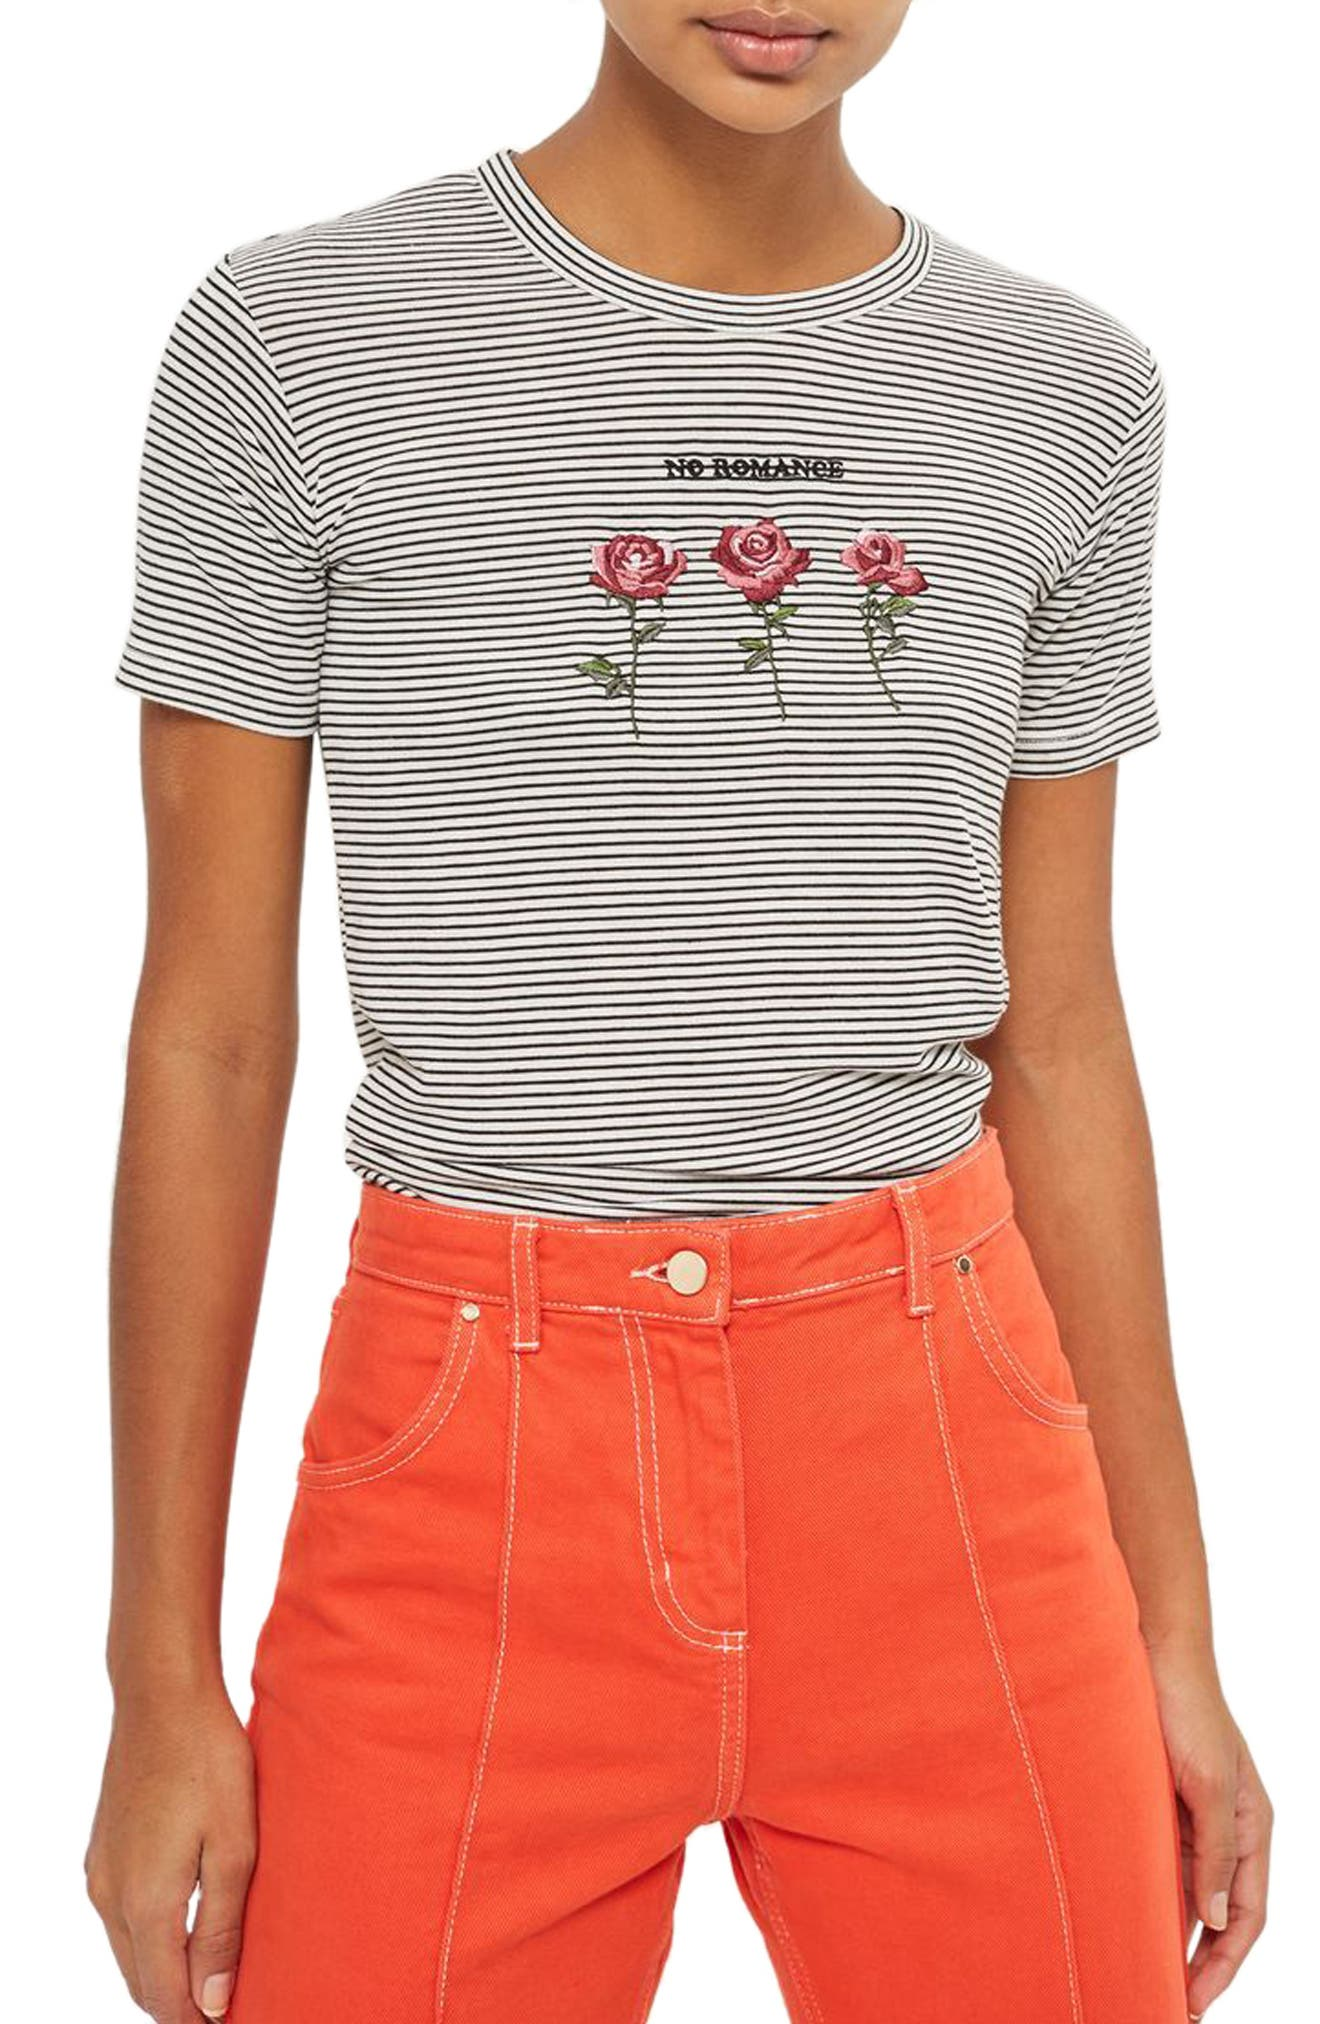 Alternate Image 1 Selected - Topshop No Romance Graphic Stripe Tee